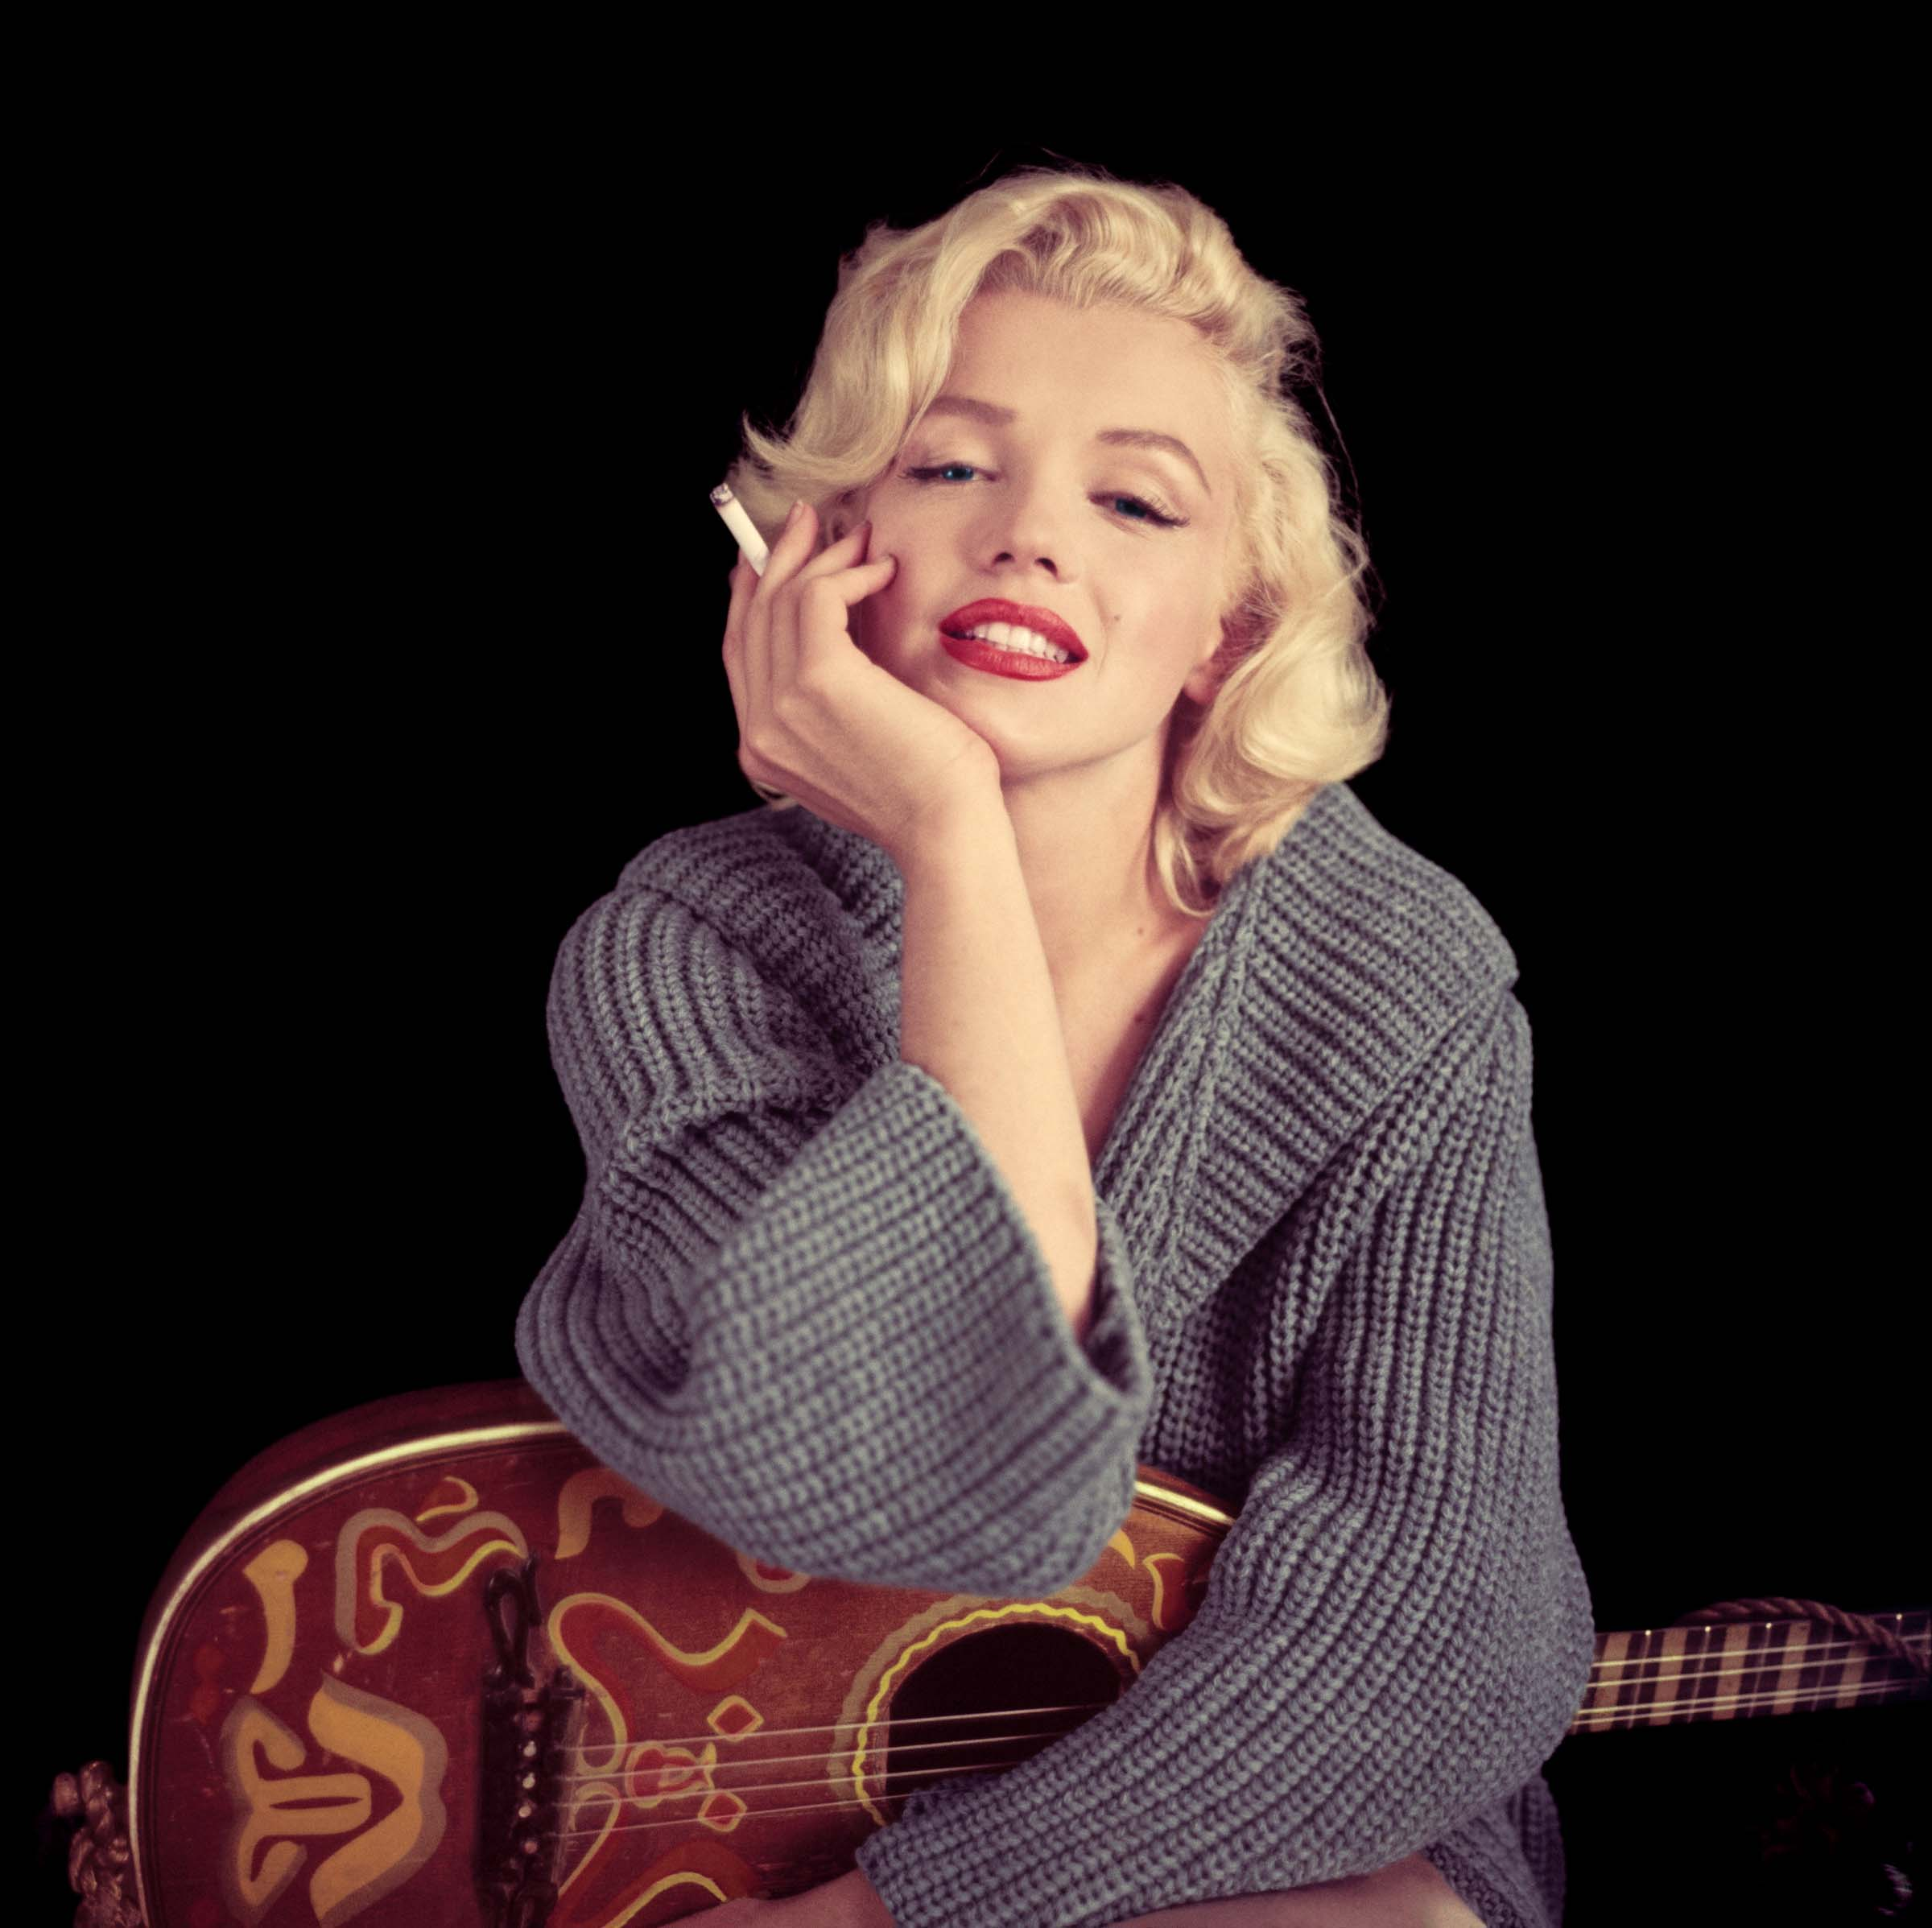 The story behind five unseen images of Marilyn Monroe - Interview ...